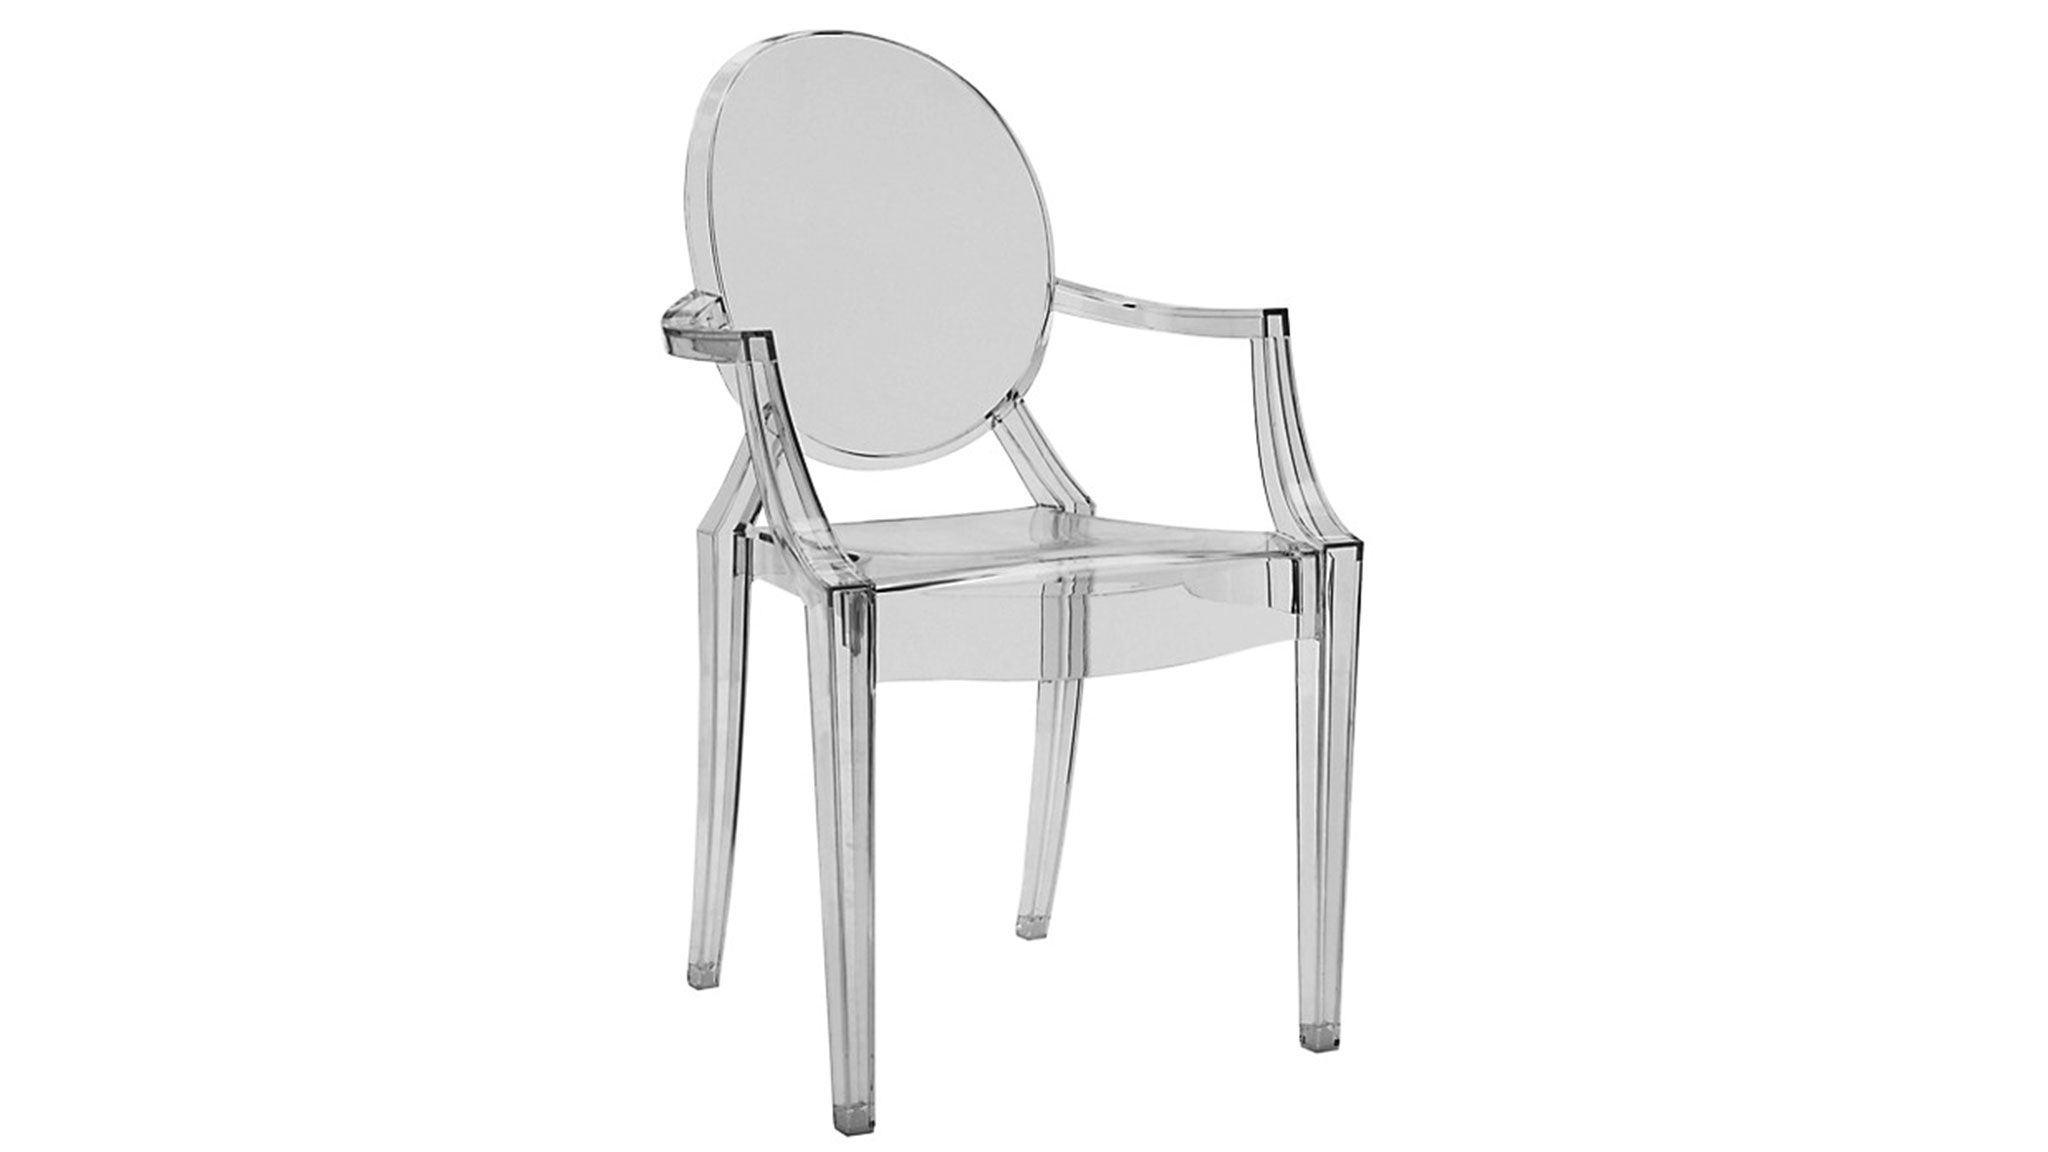 design classic the louis ghost chair by philippe starck -